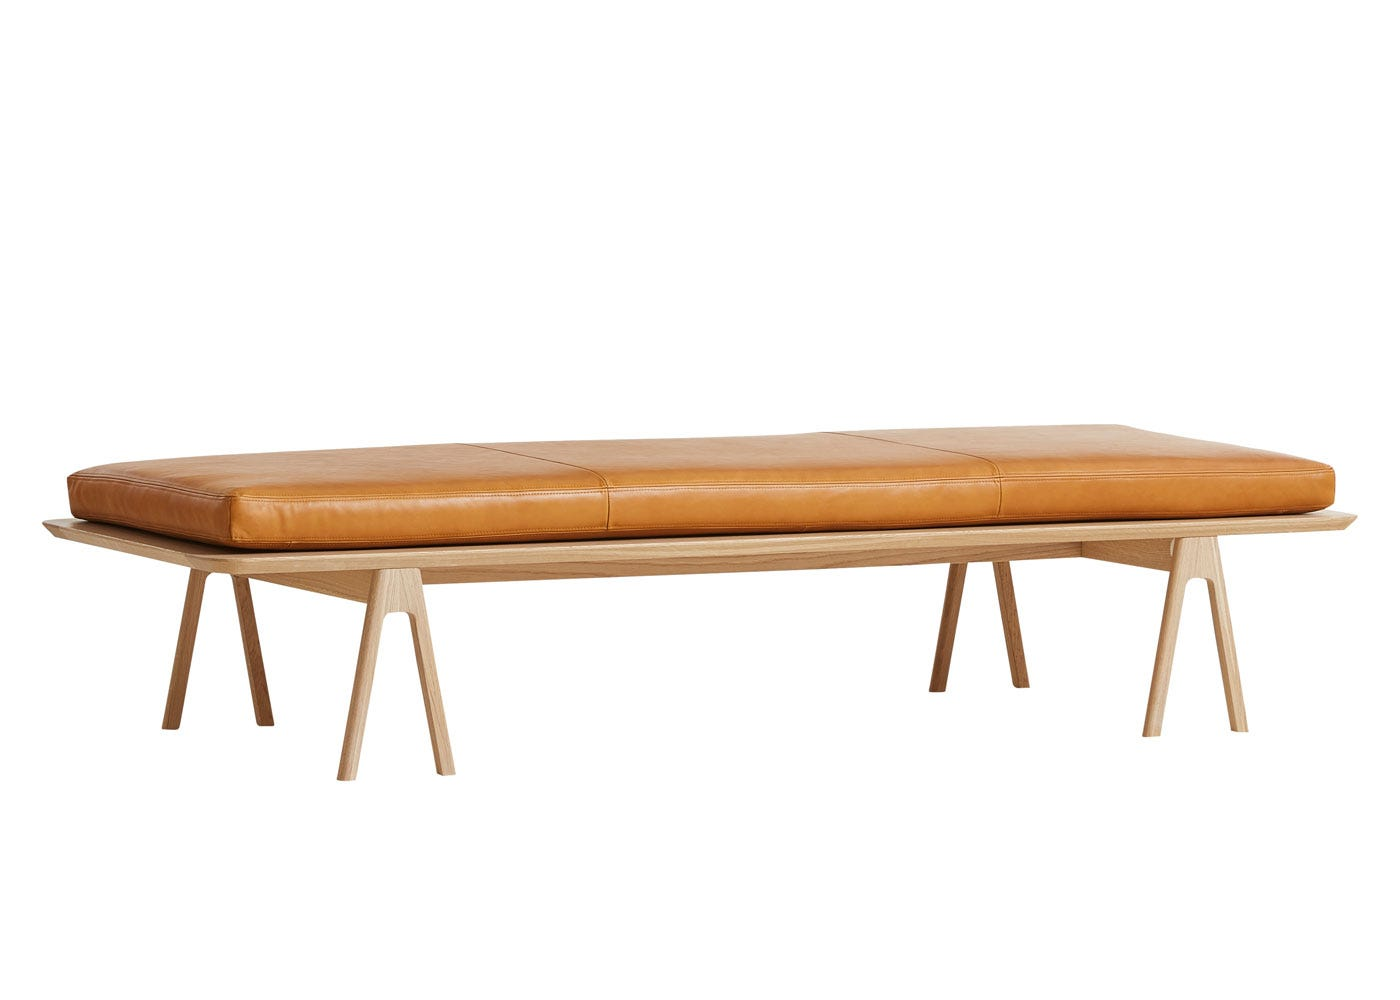 As shown: Level Daybed with light oak frame and cognac leather cushion.